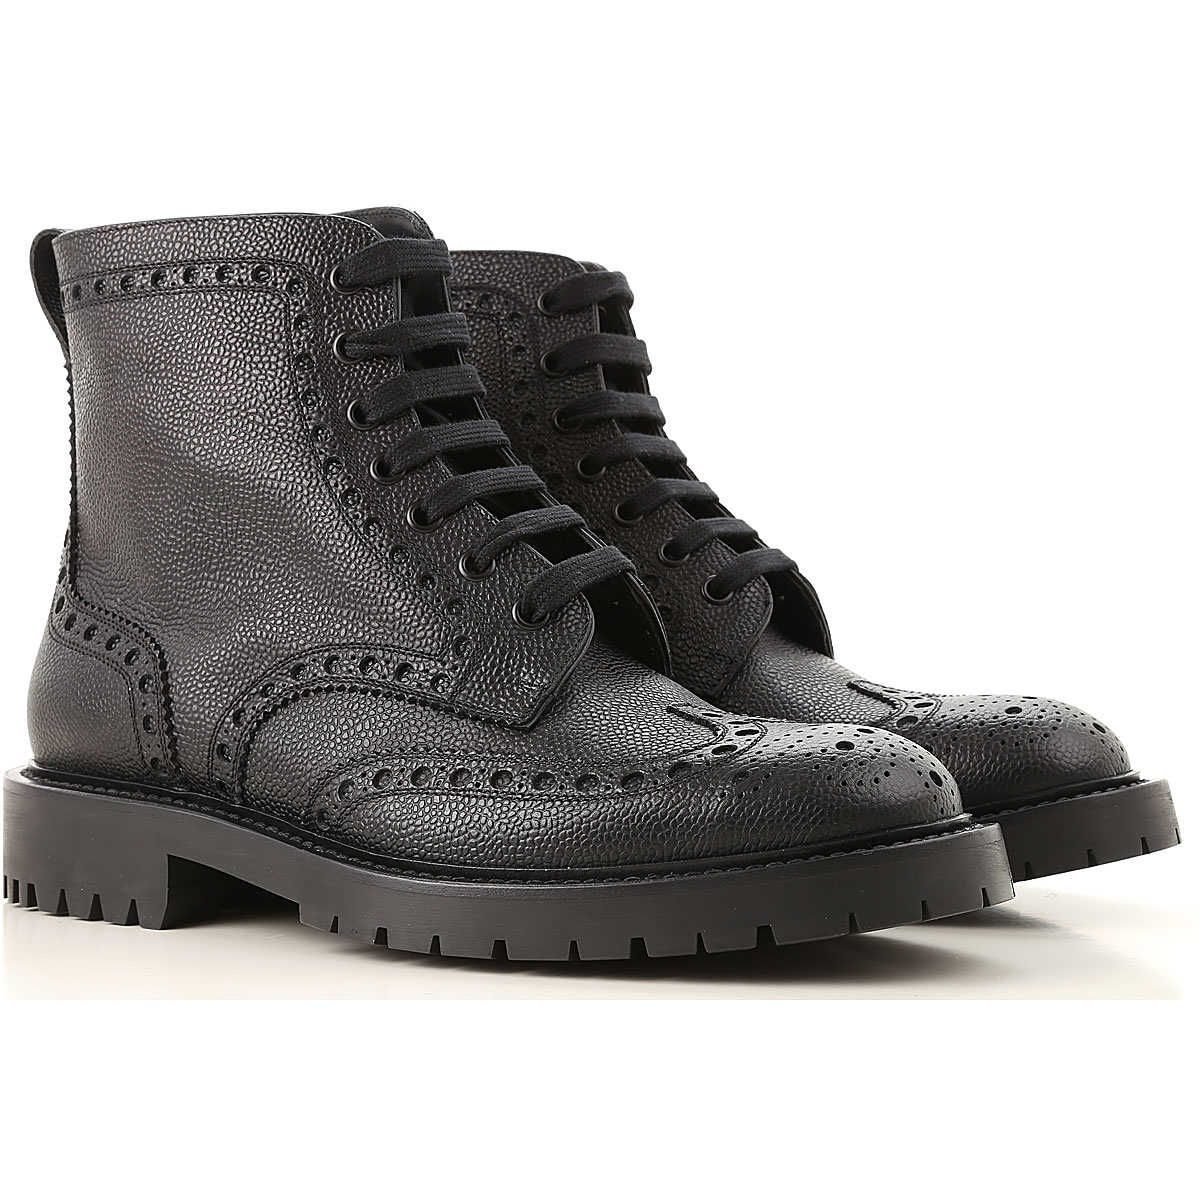 Burberry Boots for Men Booties On Sale - GOOFASH